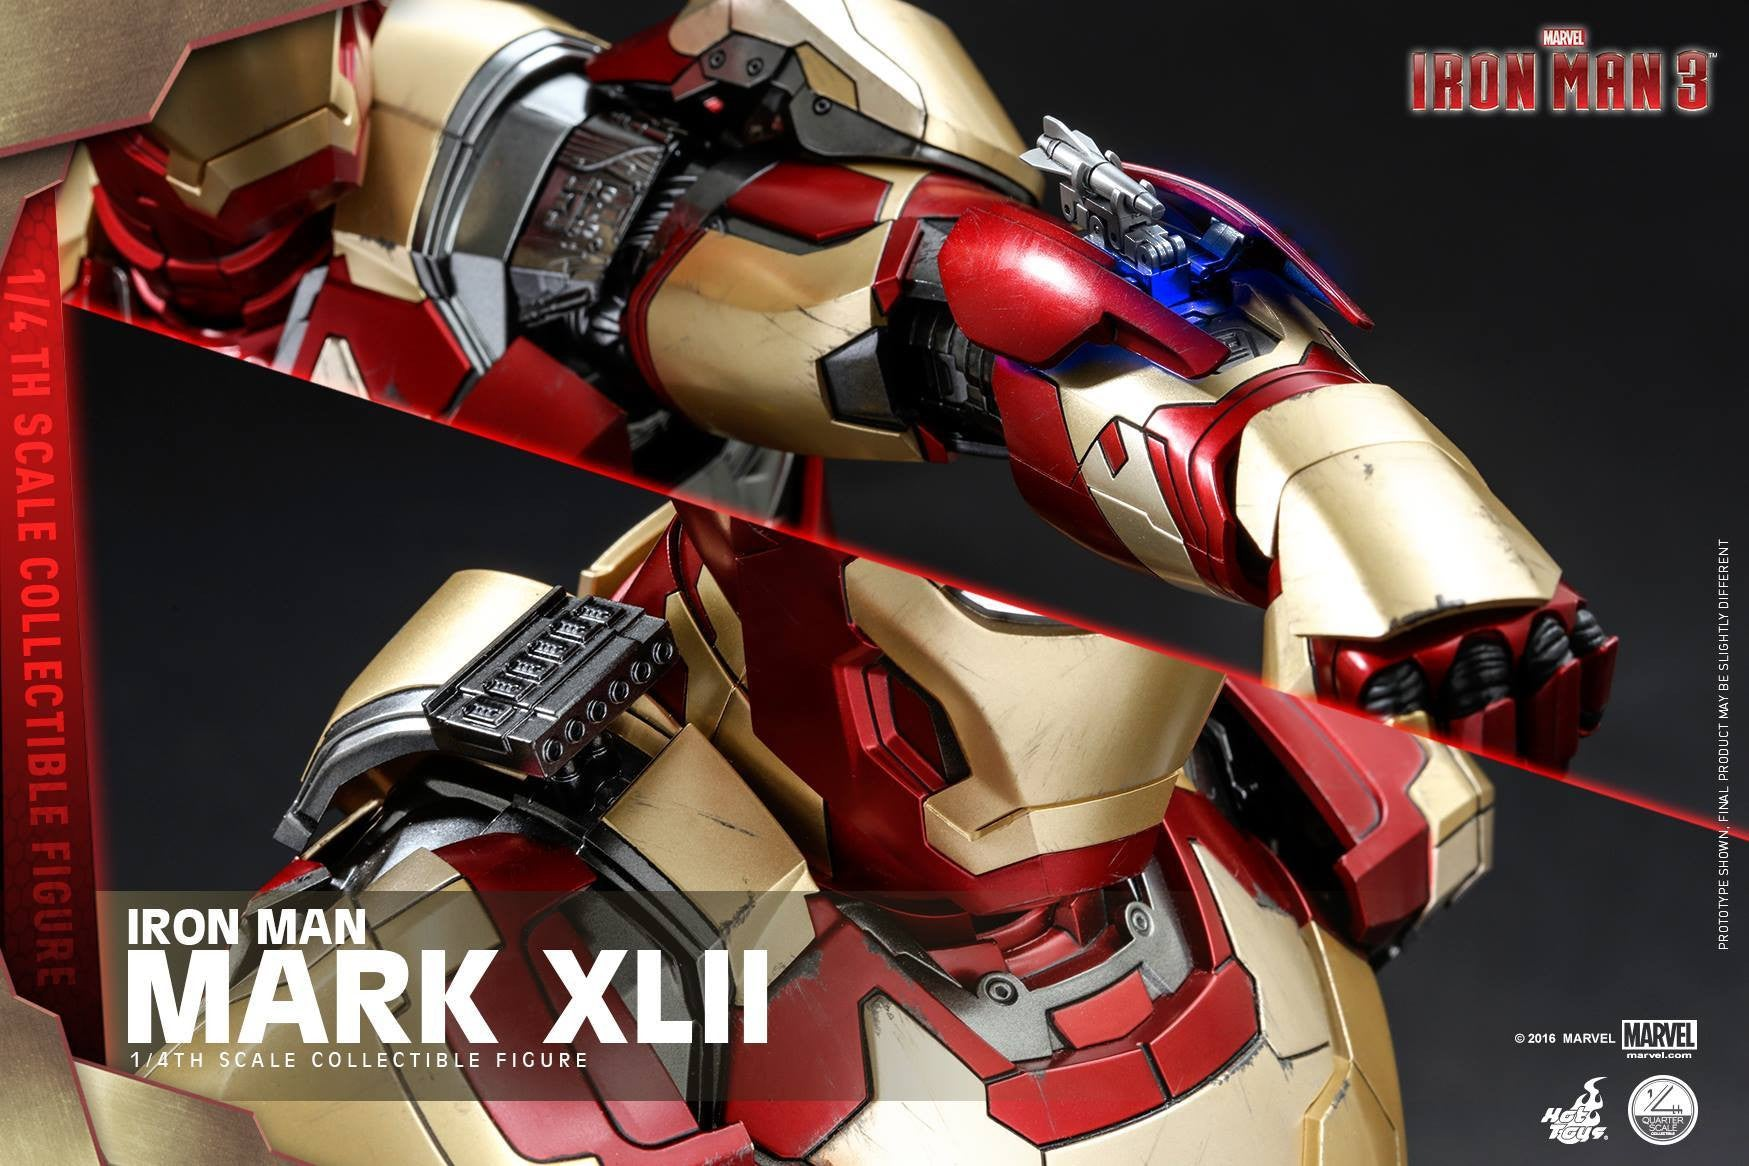 Hot Toys - QS007 - Iron Man 3 - 1/4th scale Mark XLII - Marvelous Toys - 2